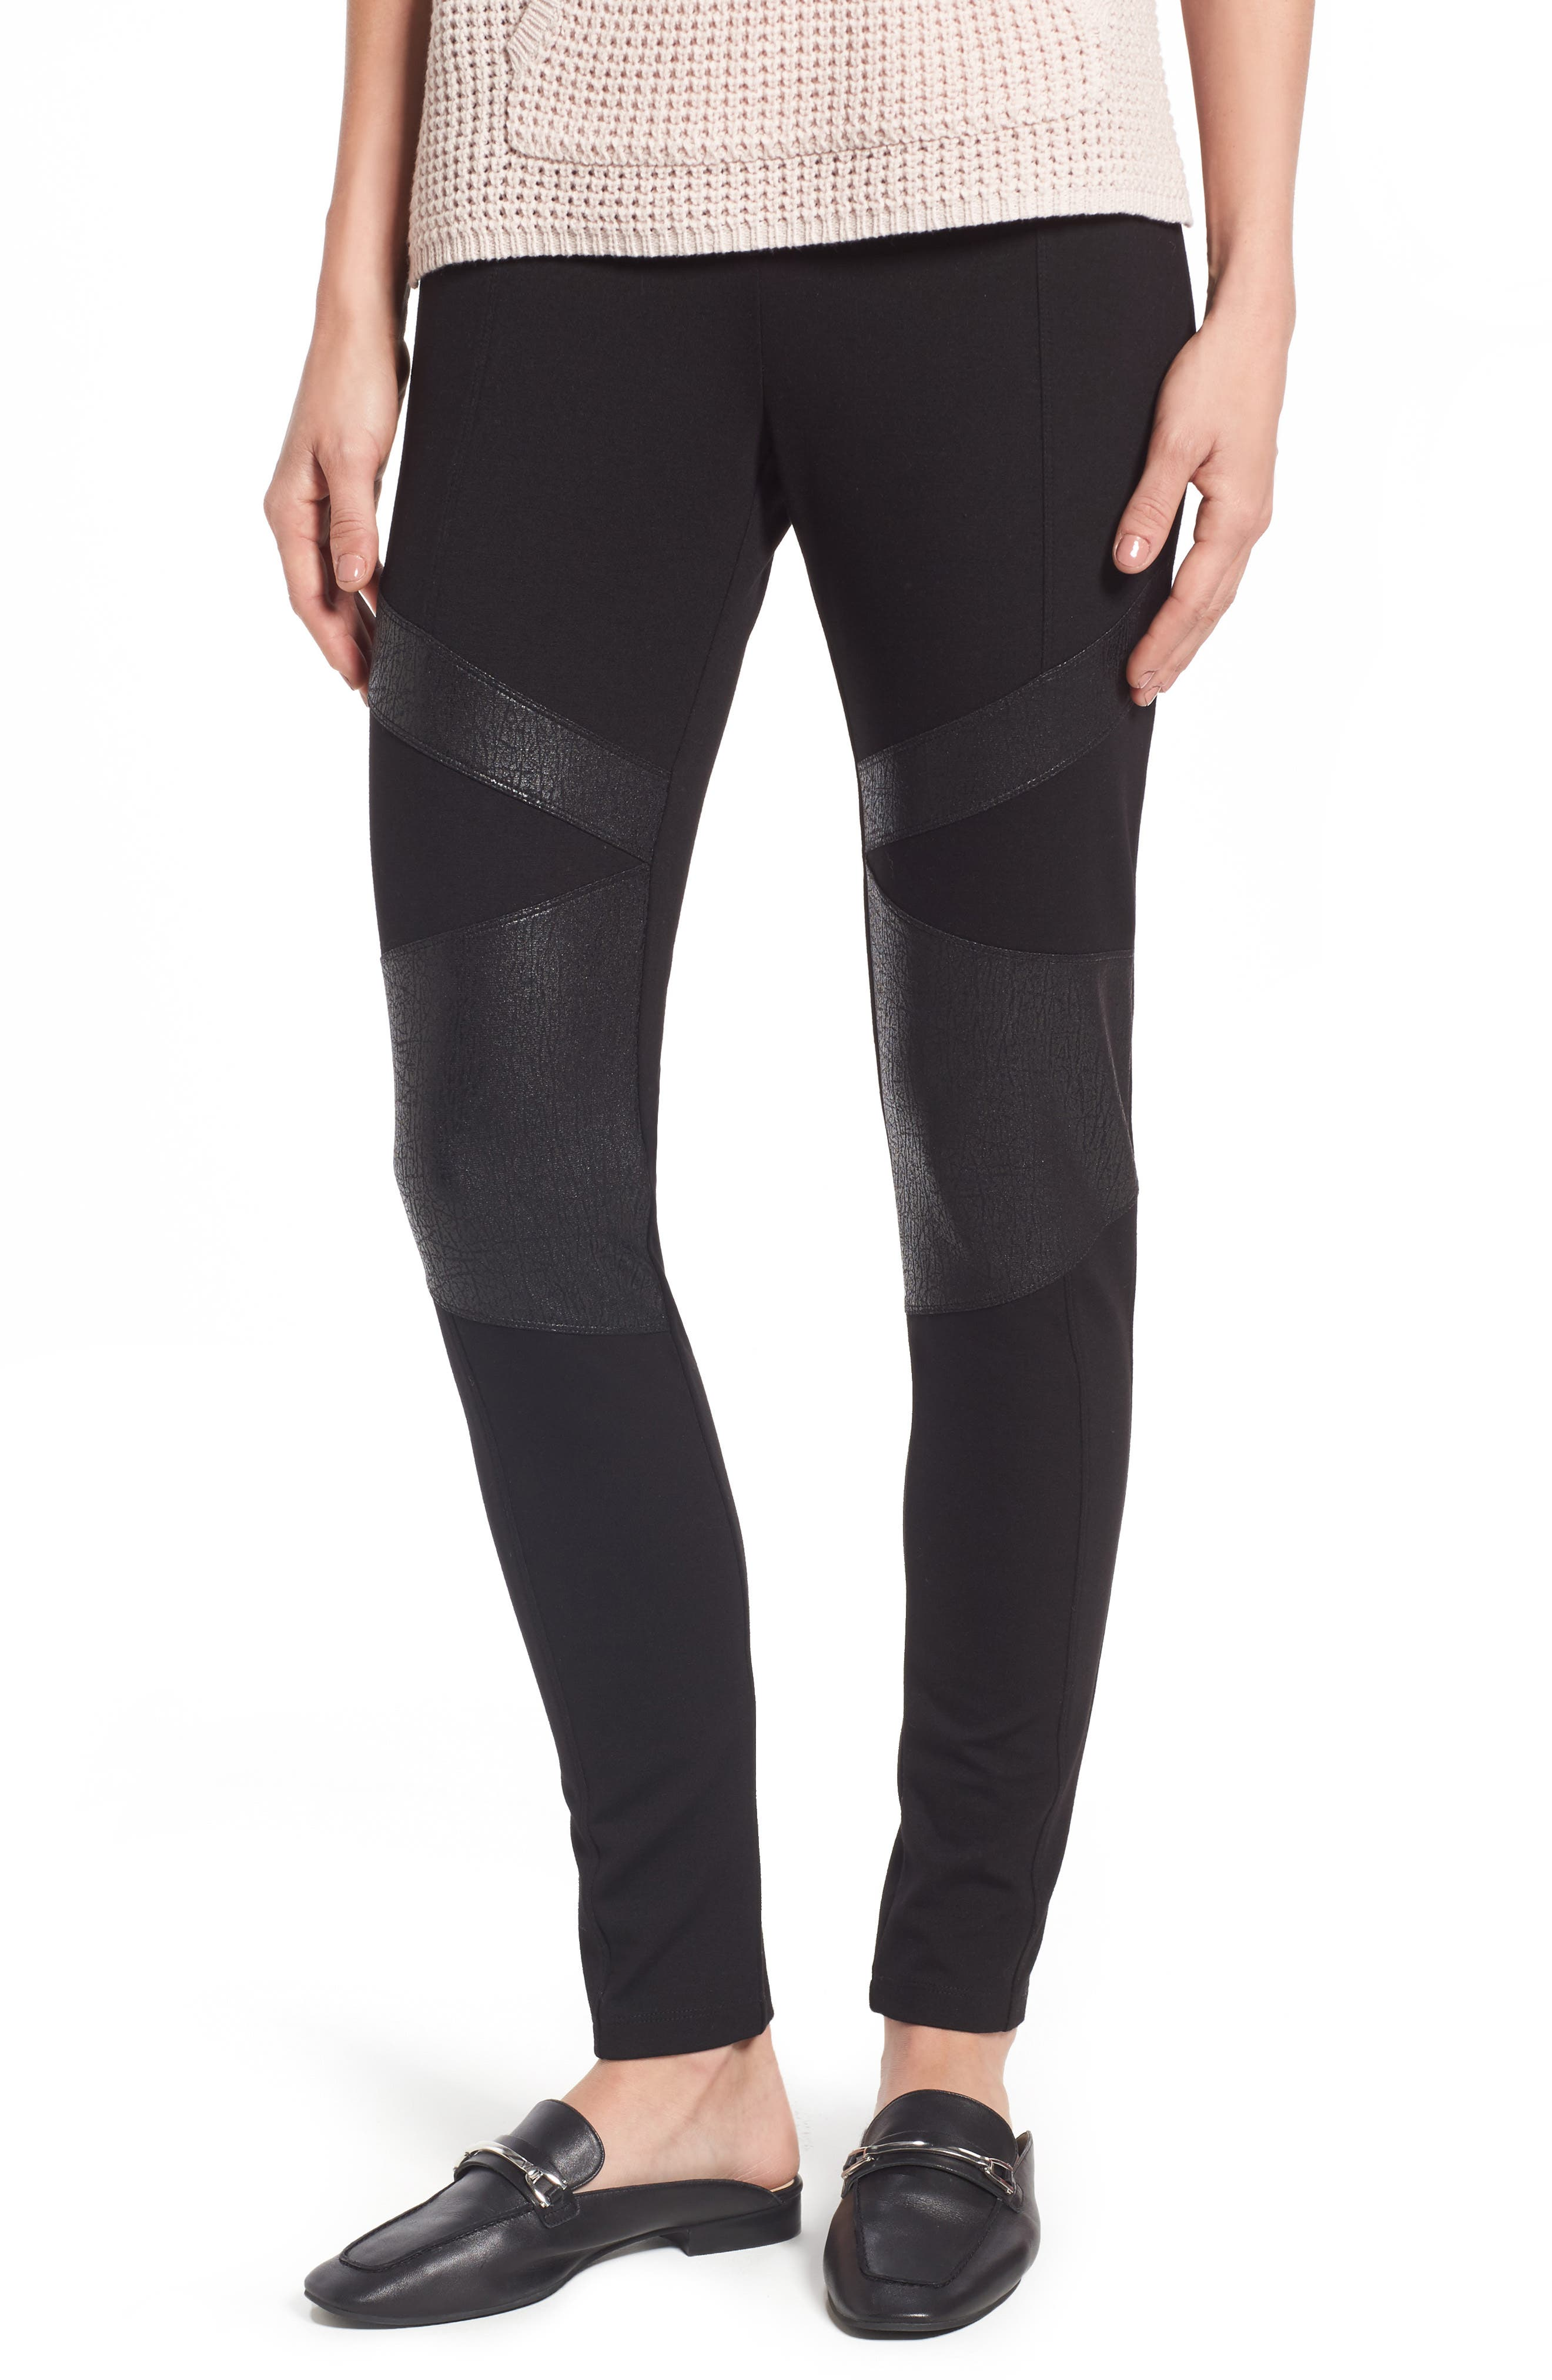 Alternate Image 1 Selected - Two by Vince Camuto Lacquer Inset Moto Leggings (Regular & Petite)